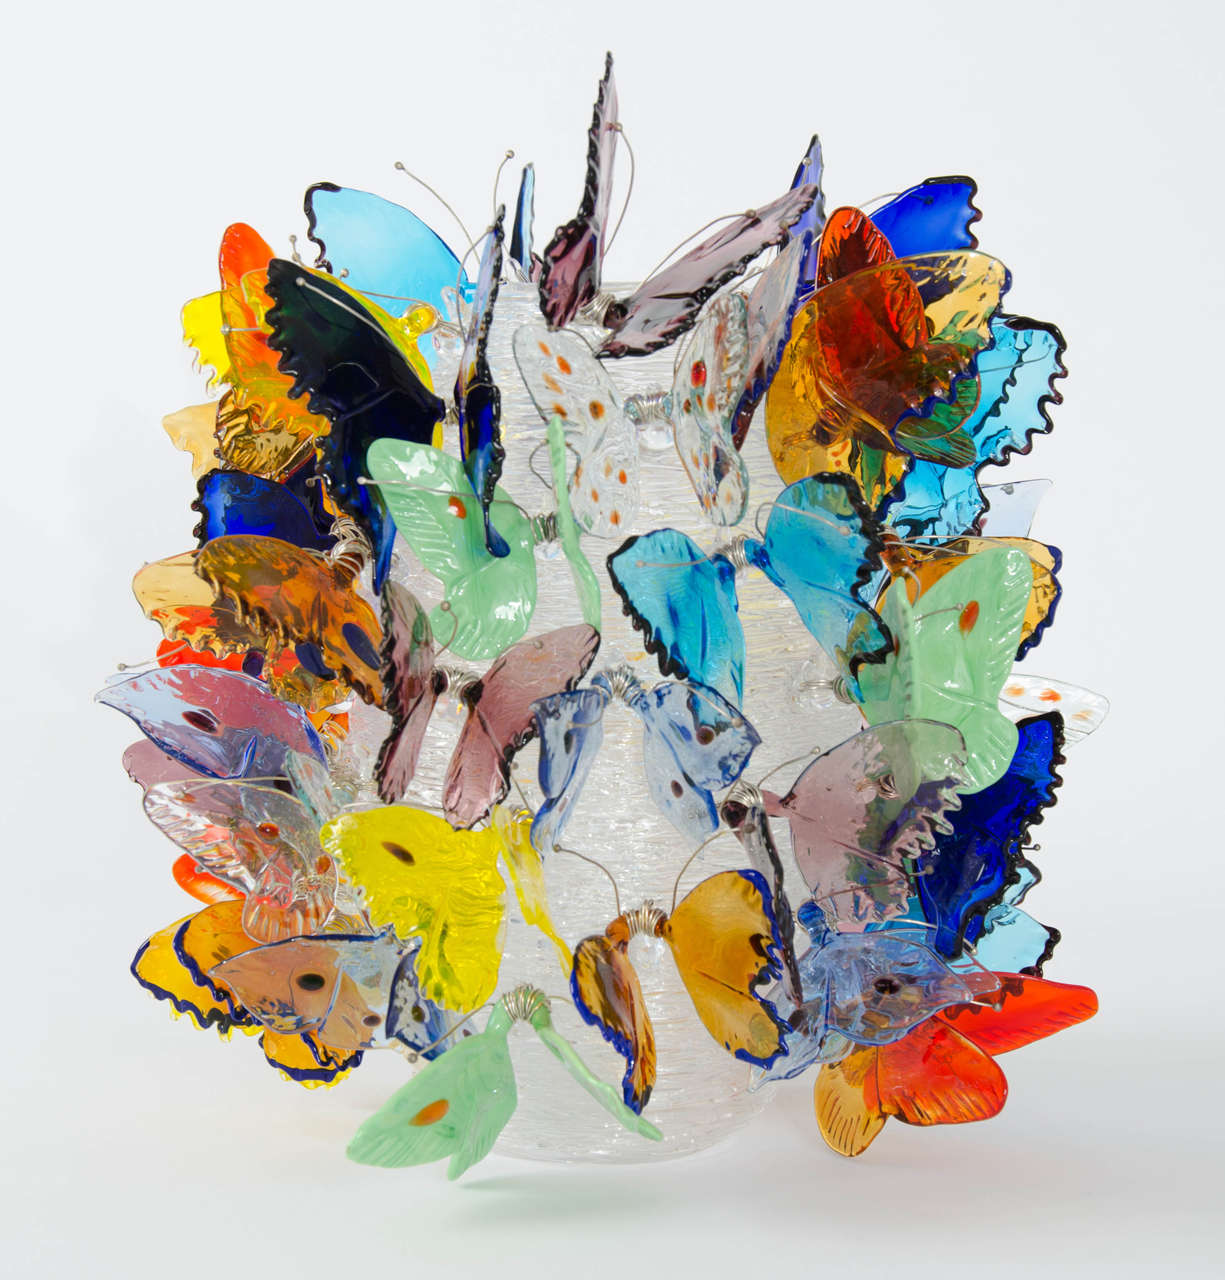 Hand-Crafted Farfalle, a Limited Edition Mixed Color Butterfly Adorned Vase by Ted Muehling For Sale